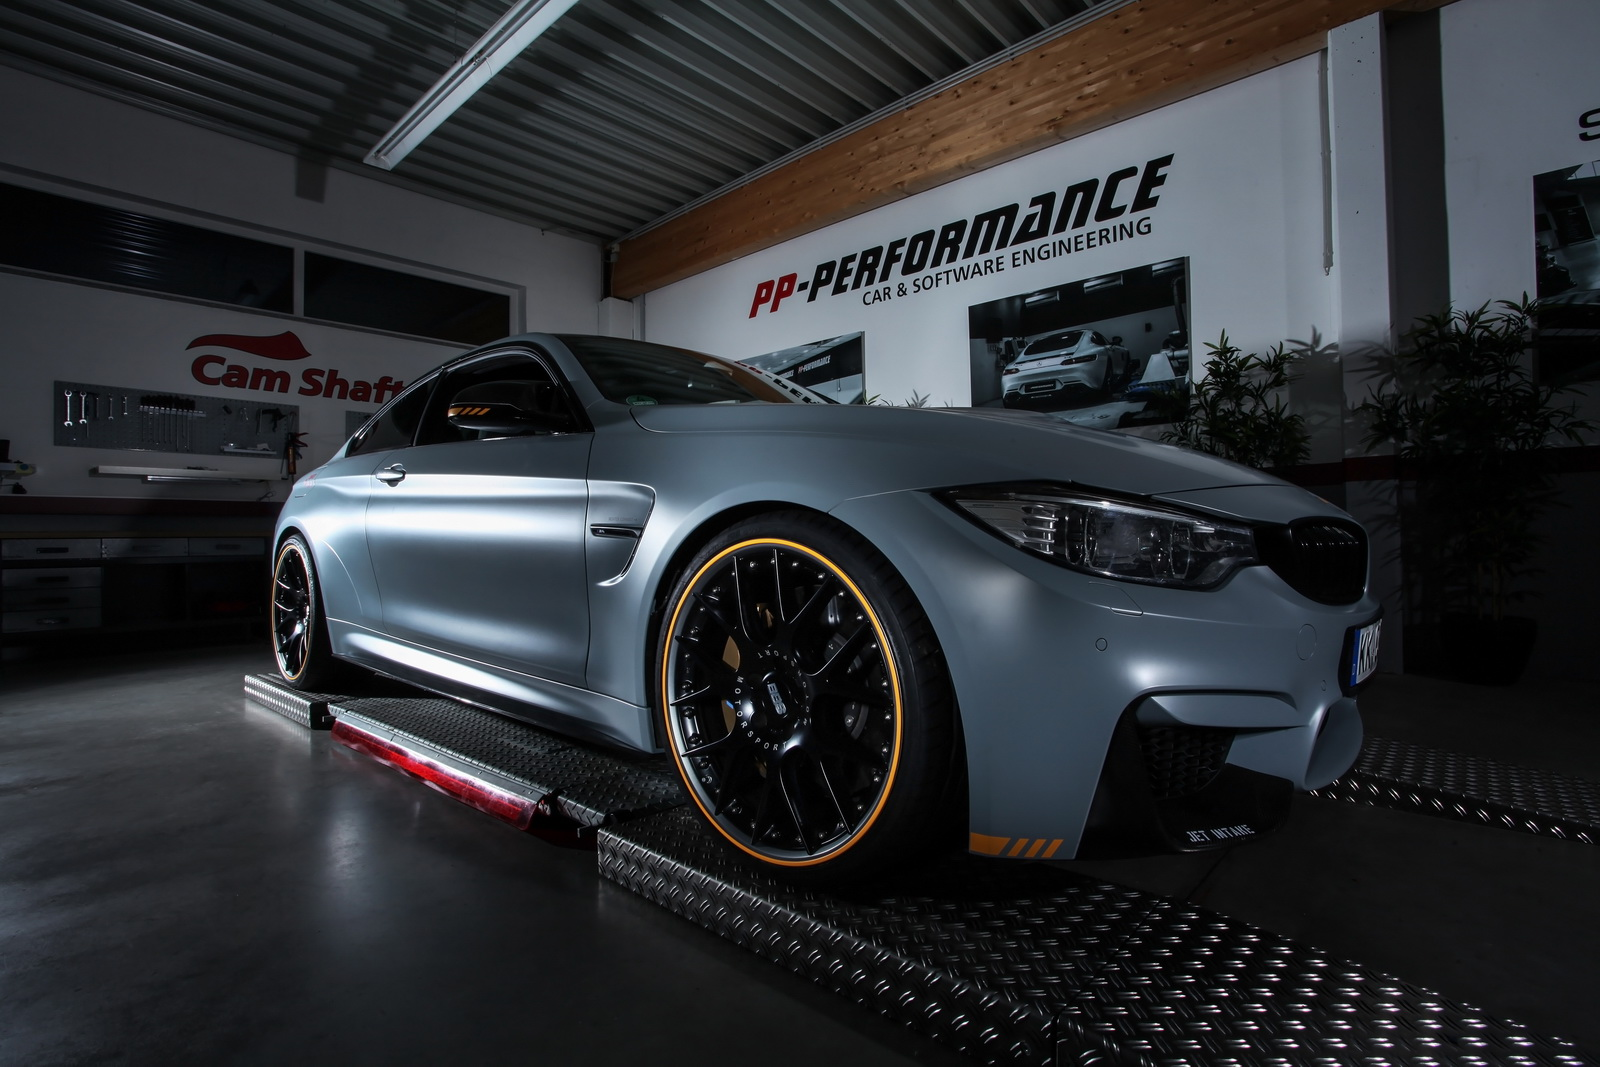 BMW M4 by Cam-Shaft (3)